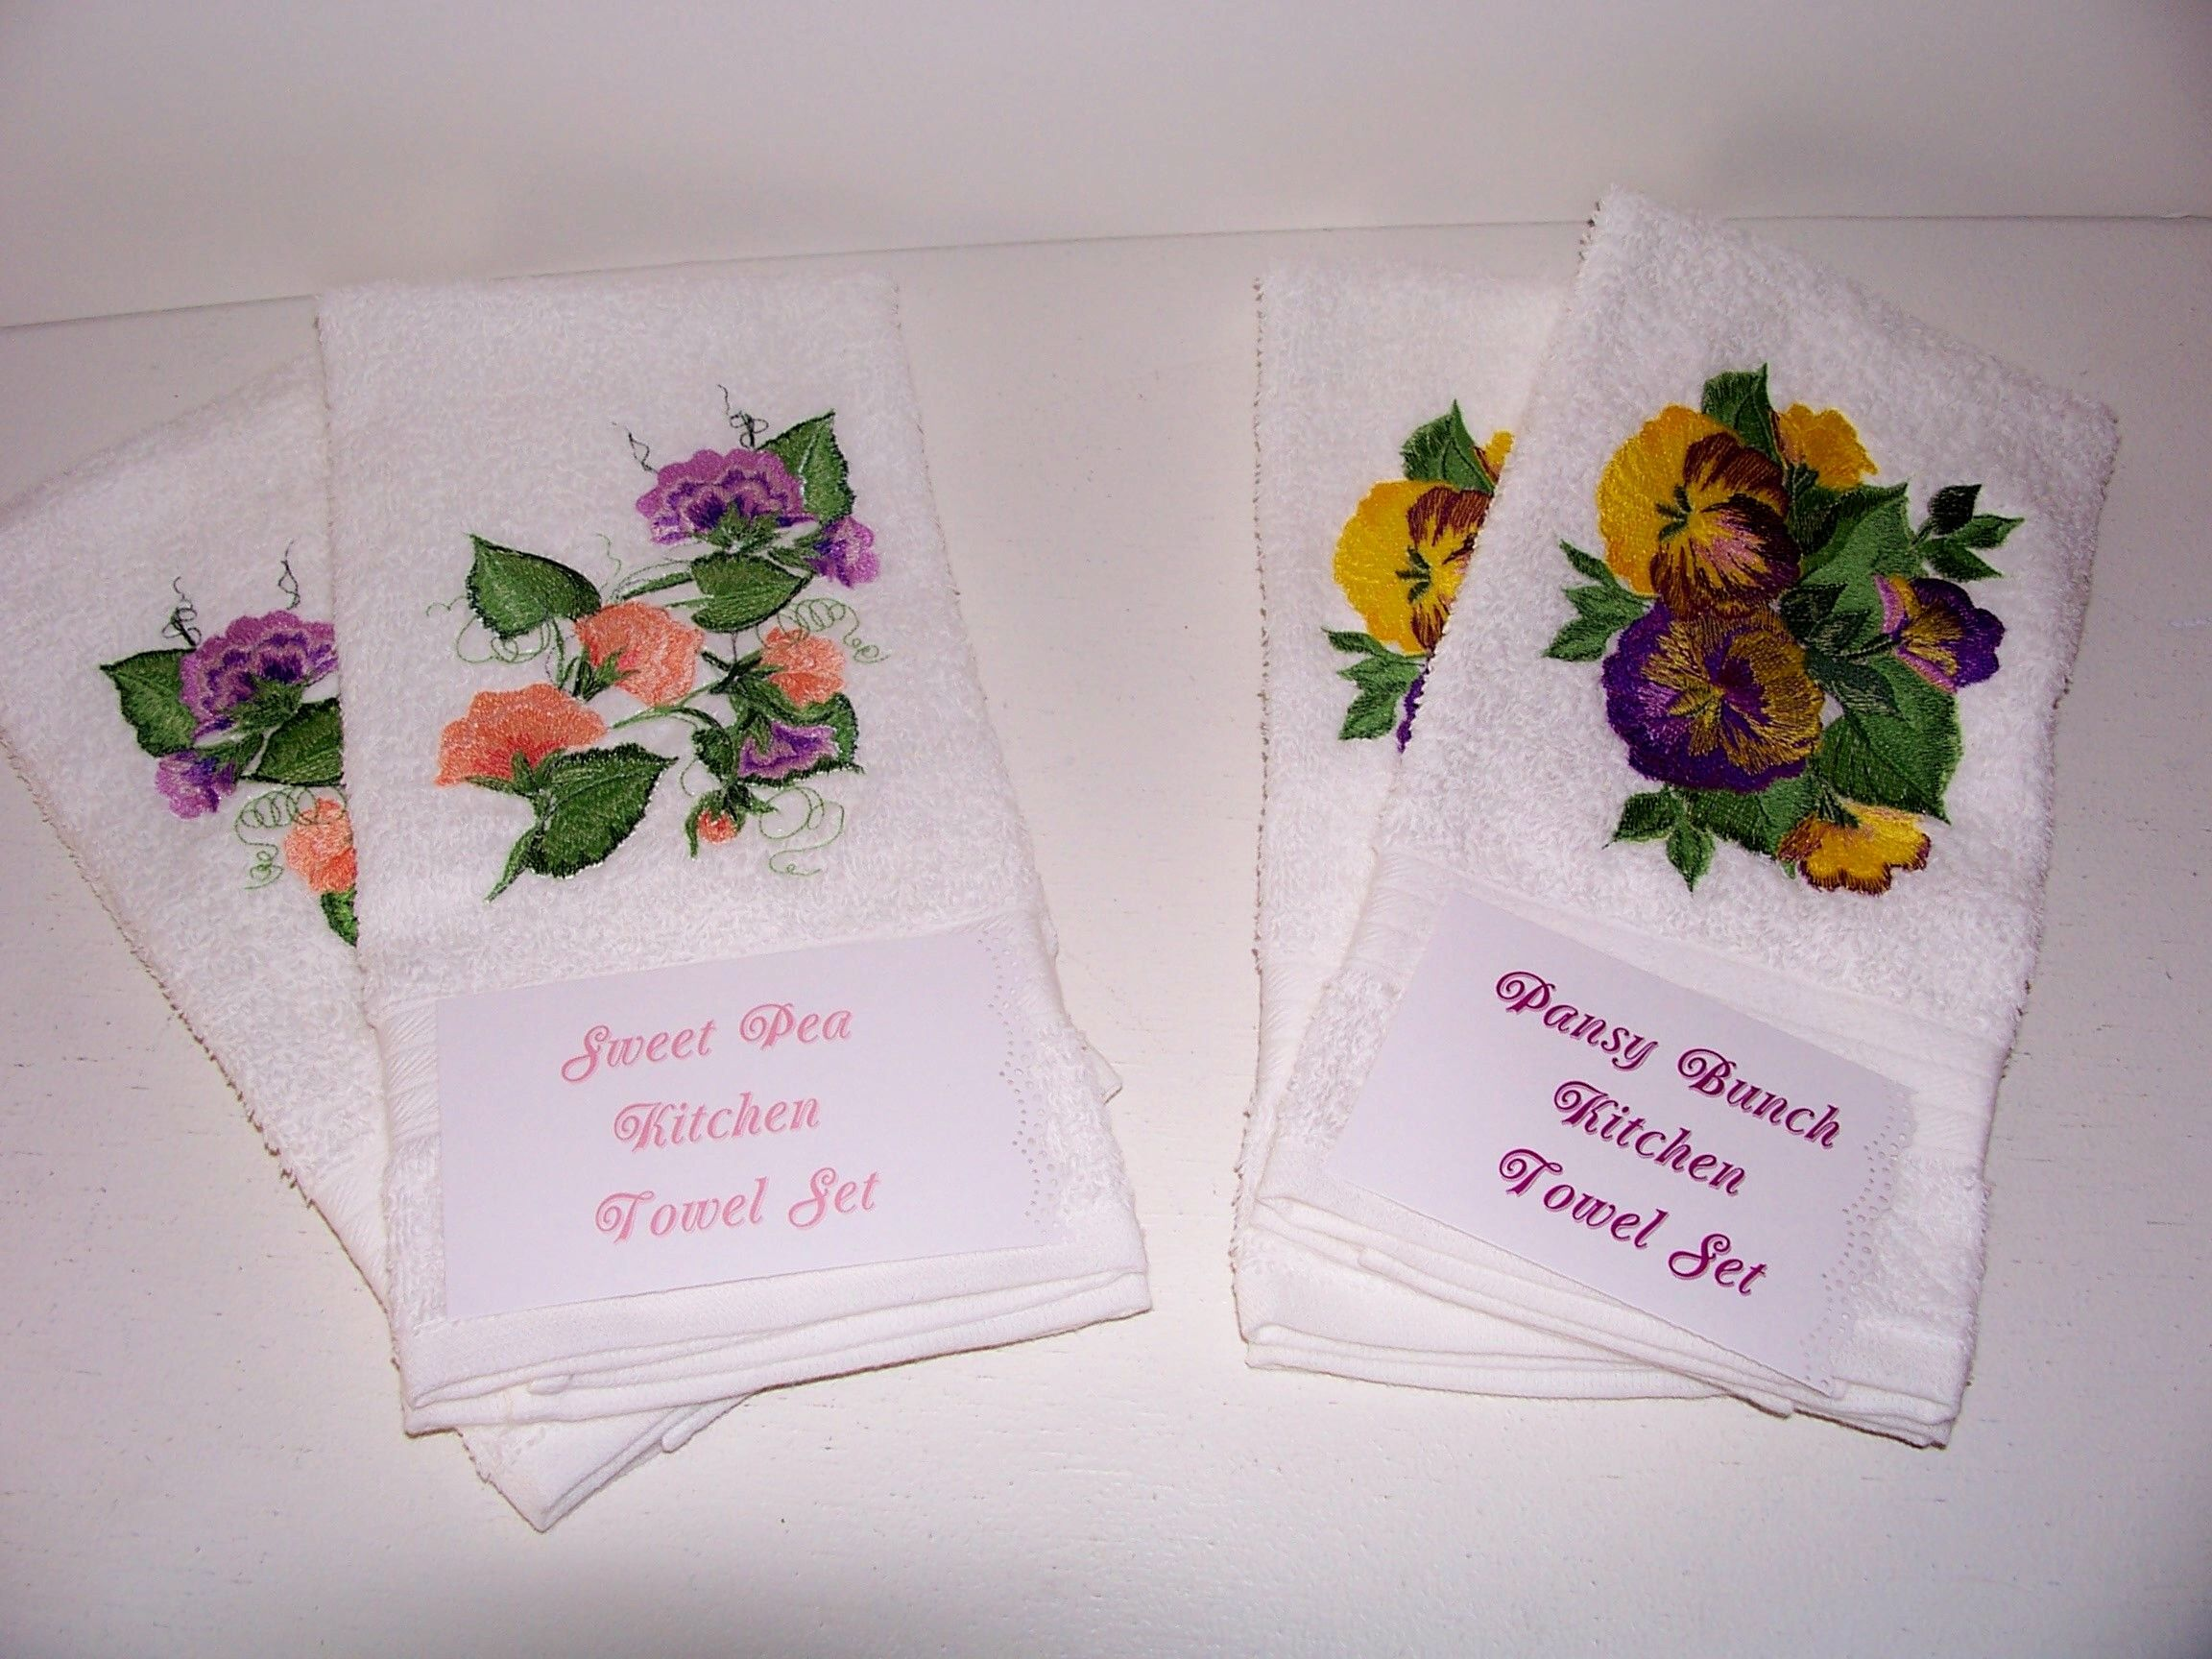 Machine embroidered kitchen towel sets embroidery